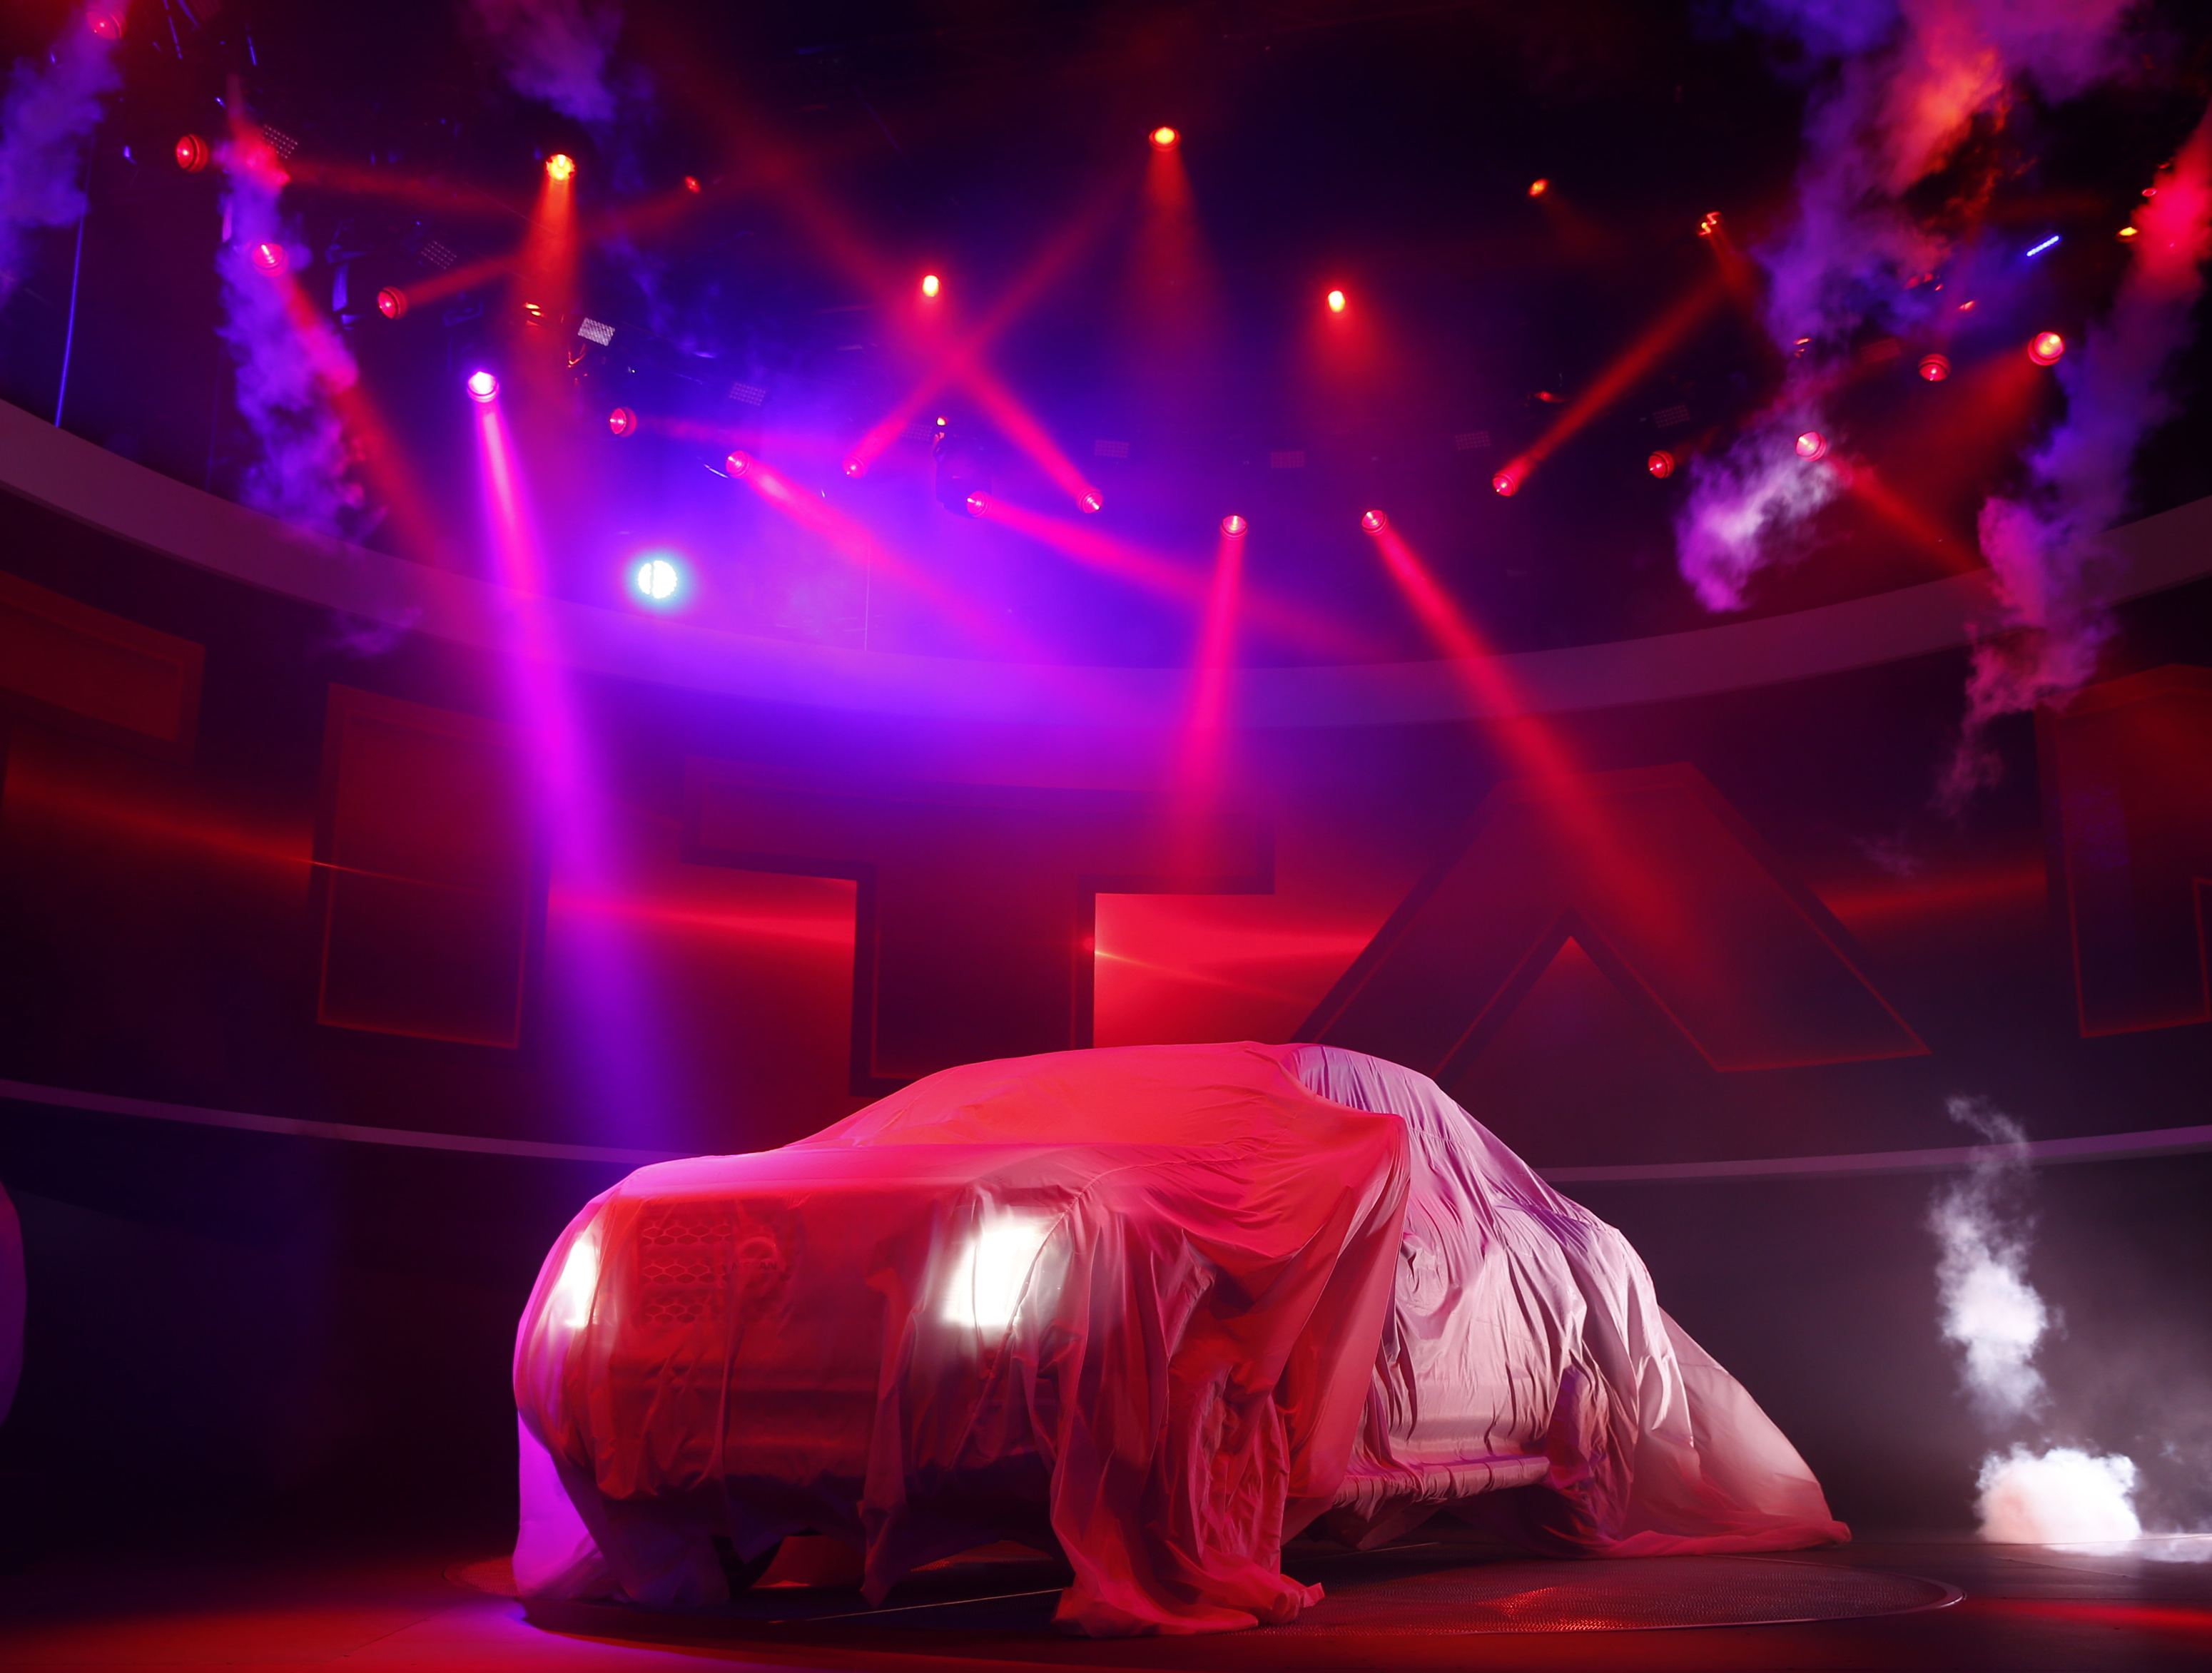 The 2016 Nissan Titan pickup truck is shown under a cover during its unveiling at the first press preview day of the North American International Auto Show in Detroit